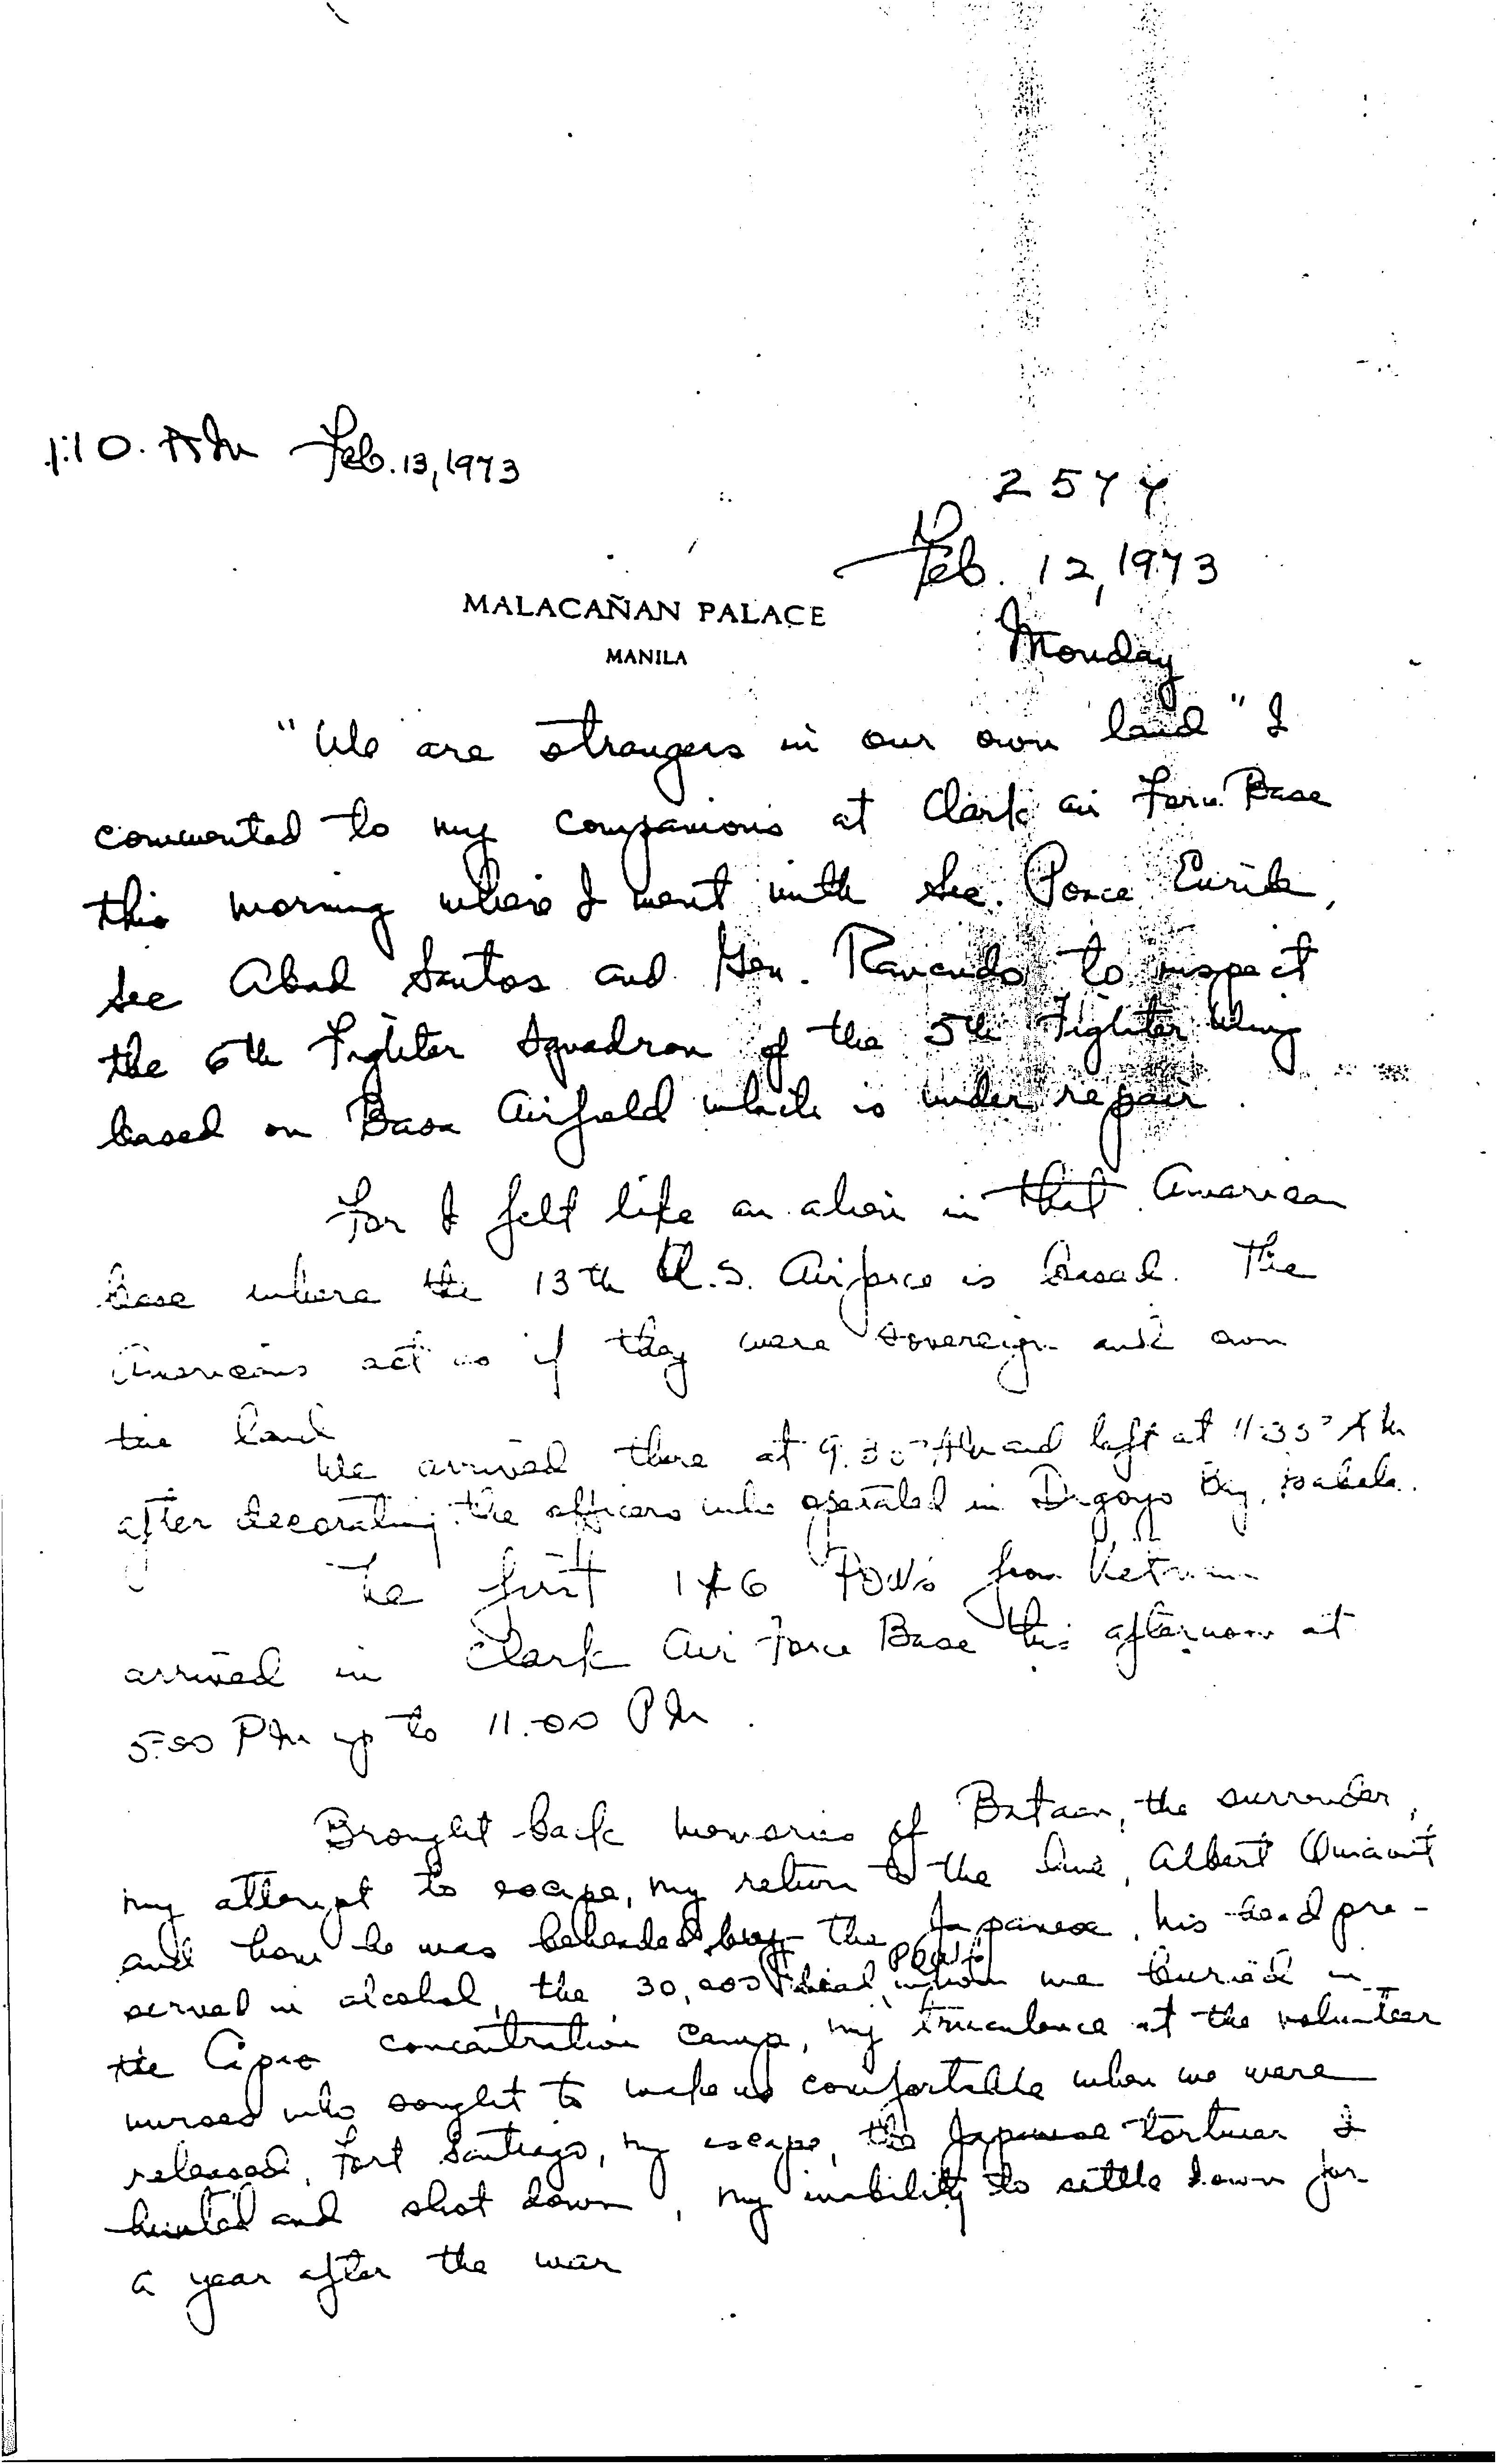 1973 Marcos Diary Black Book_Page_027